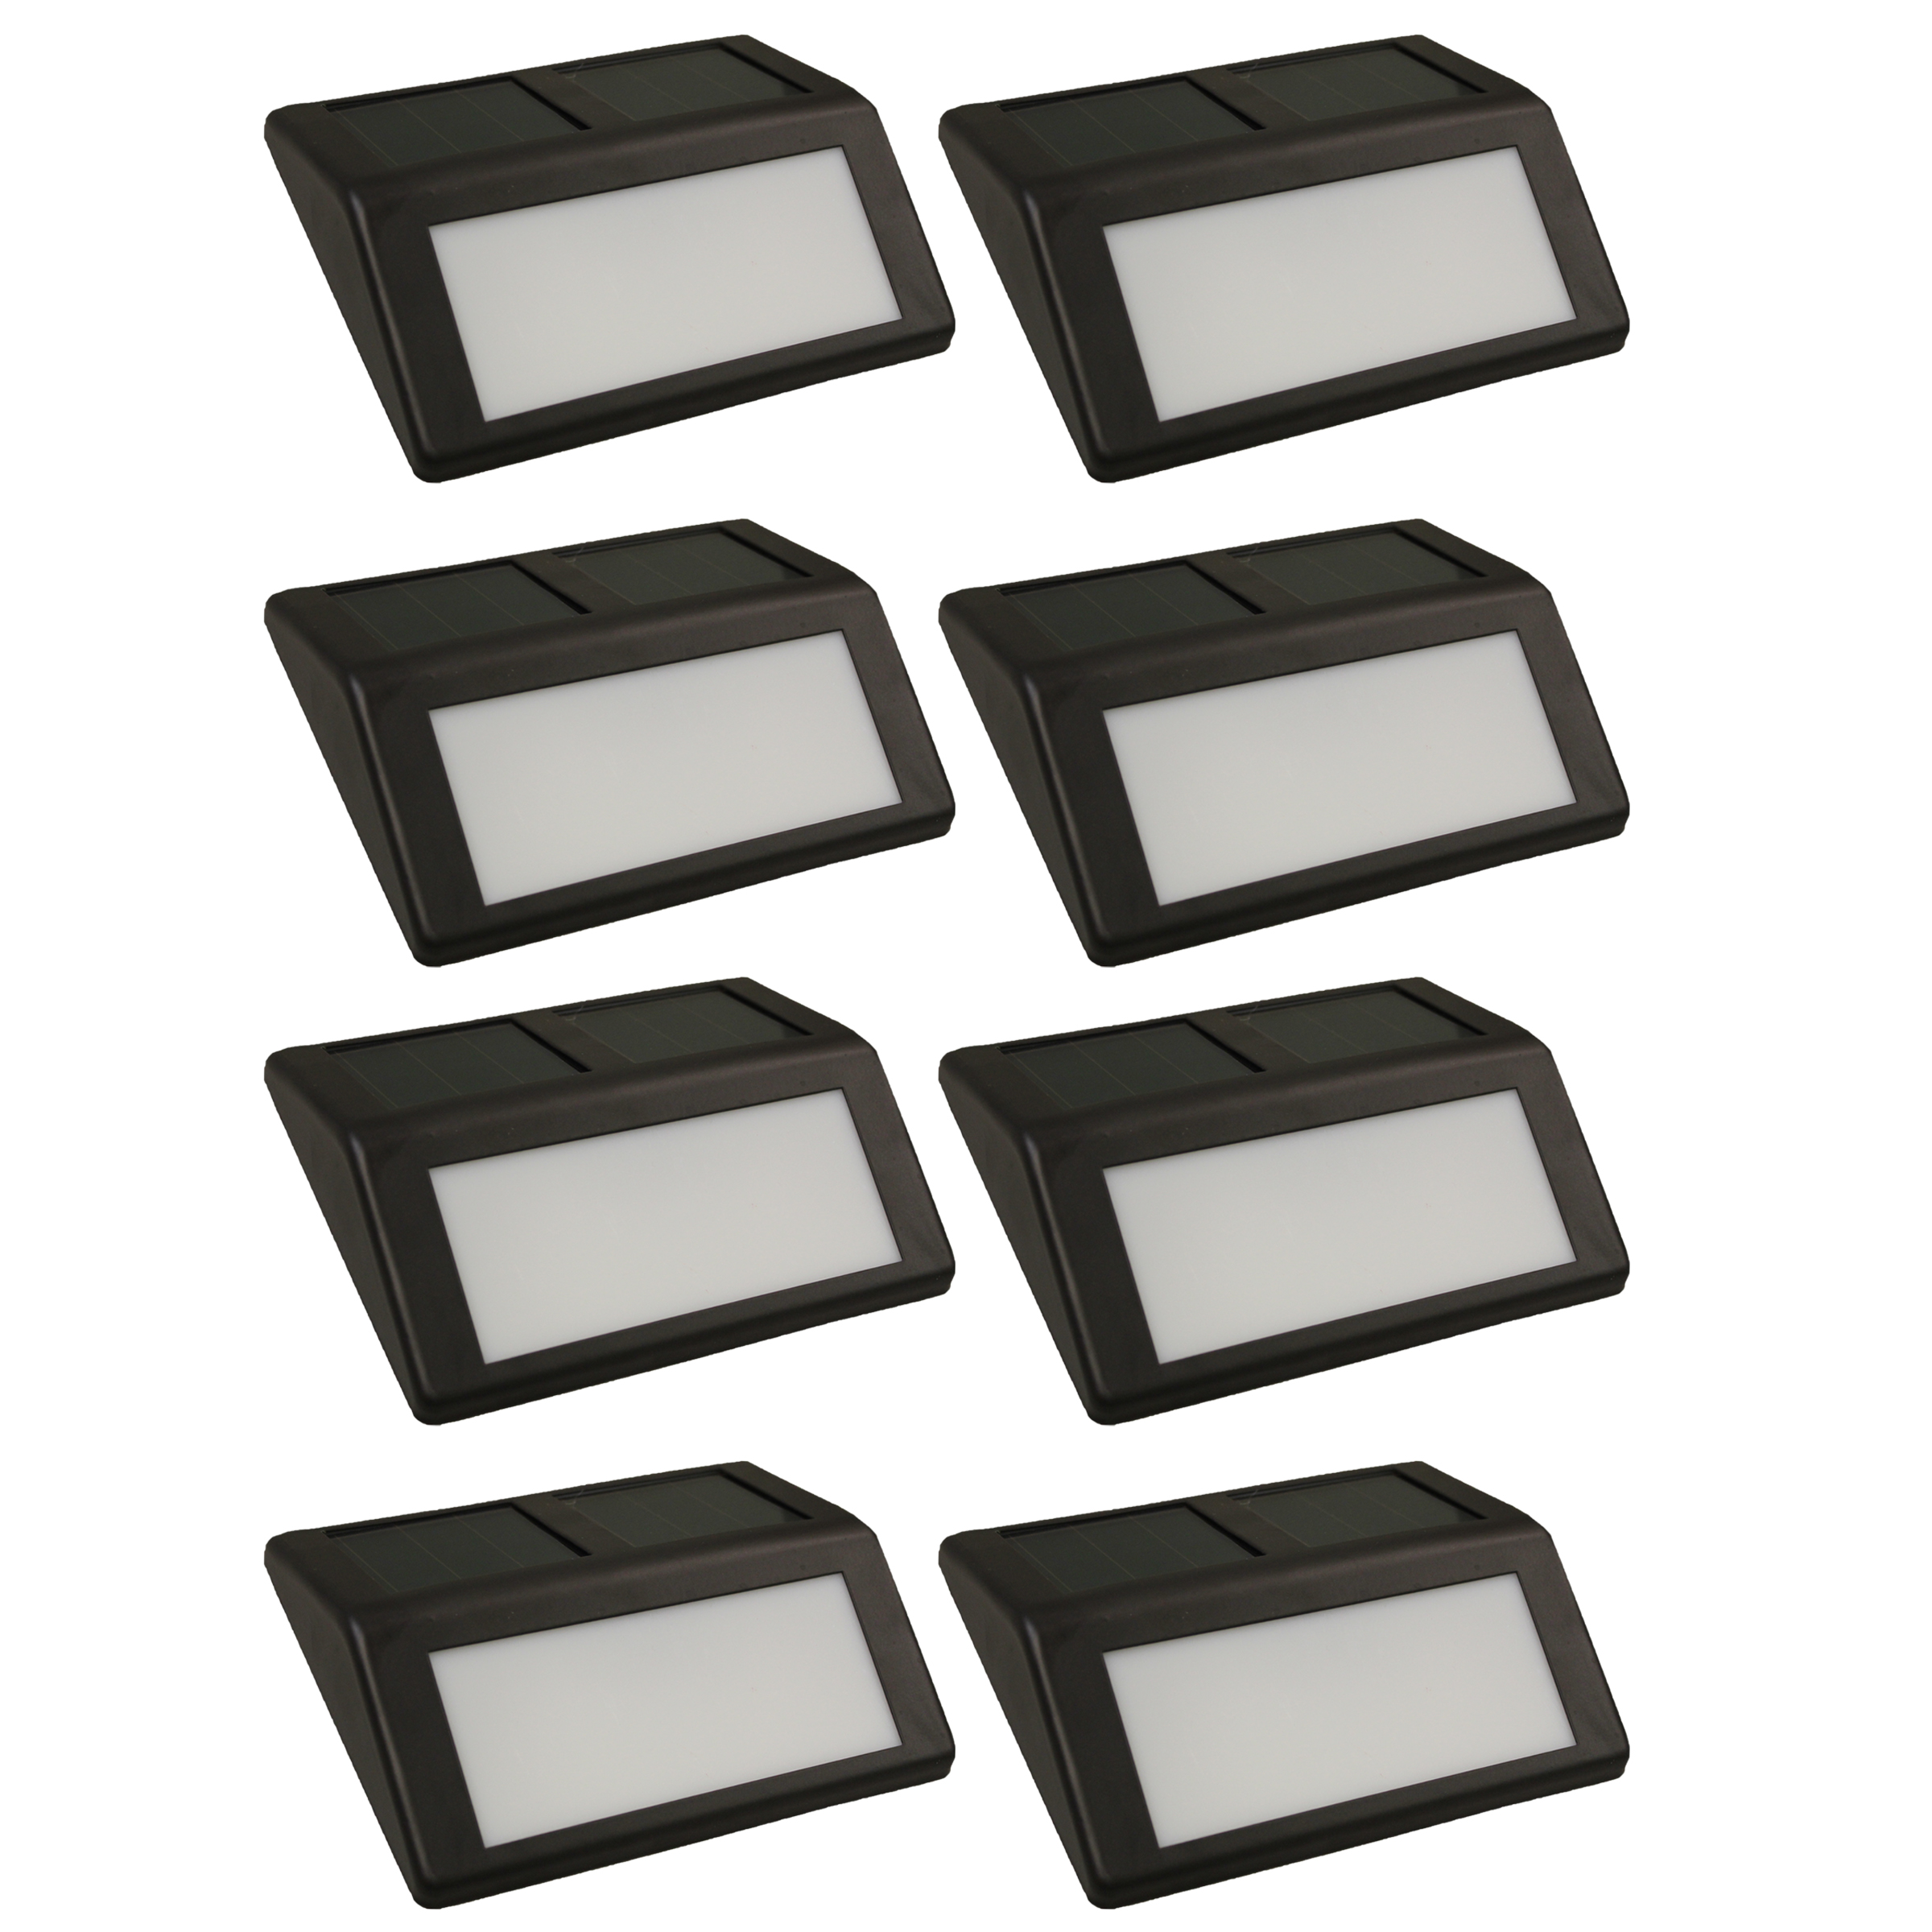 Blue Solar Wall Lights : 8 Pack Large Solar Powered LED Coffee Brown Outdoor Garden Wall Step Path Lights eBay